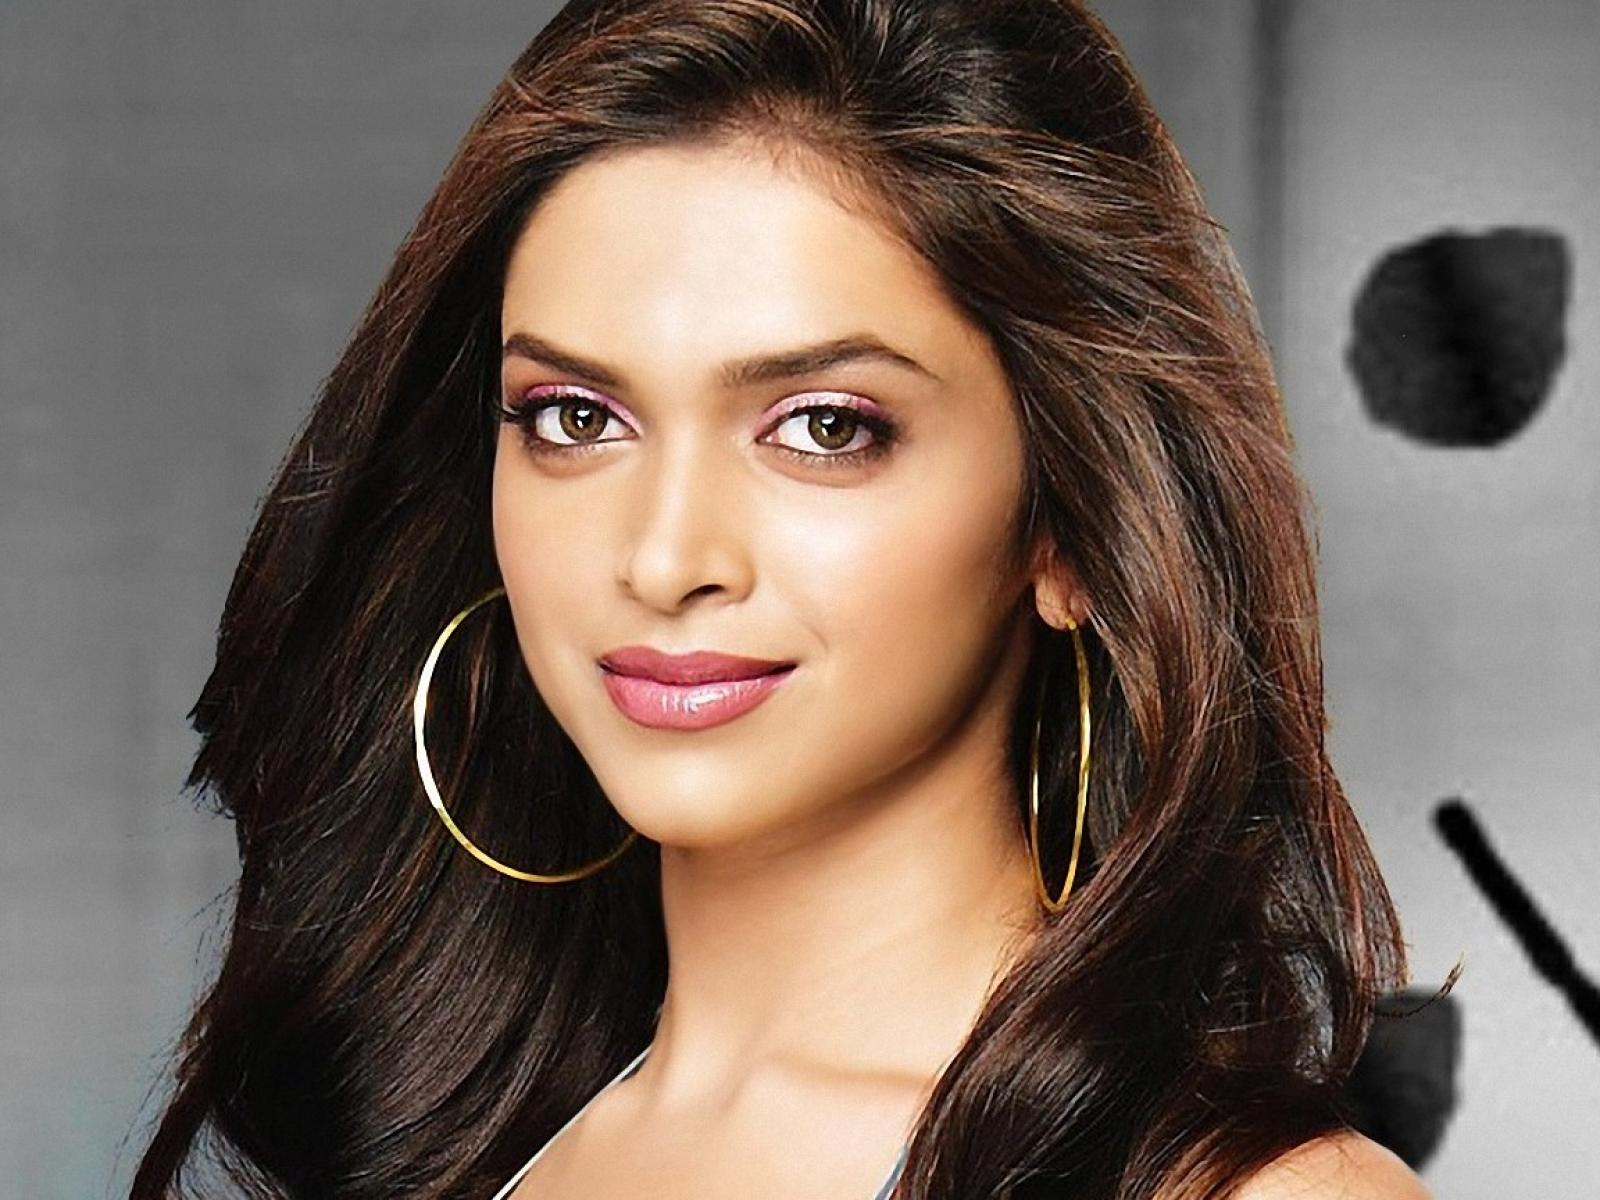 Deepika Padukone Latest HD Wallpapers 2012, Deepika Padukone is Indian